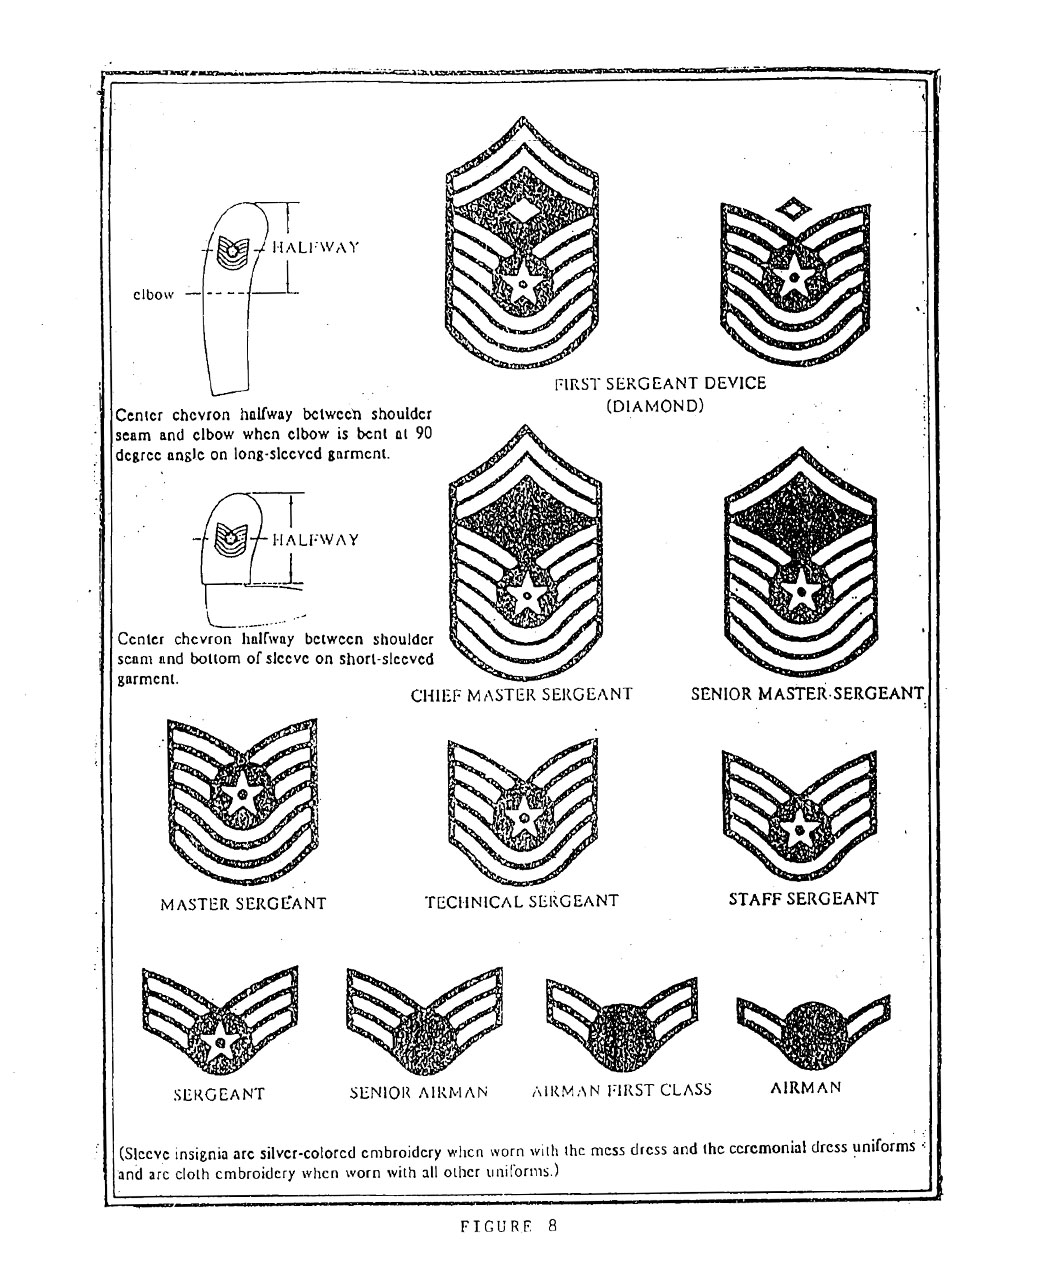 A Chronology Of The Enlisted Rank Chevron Gt Air Force